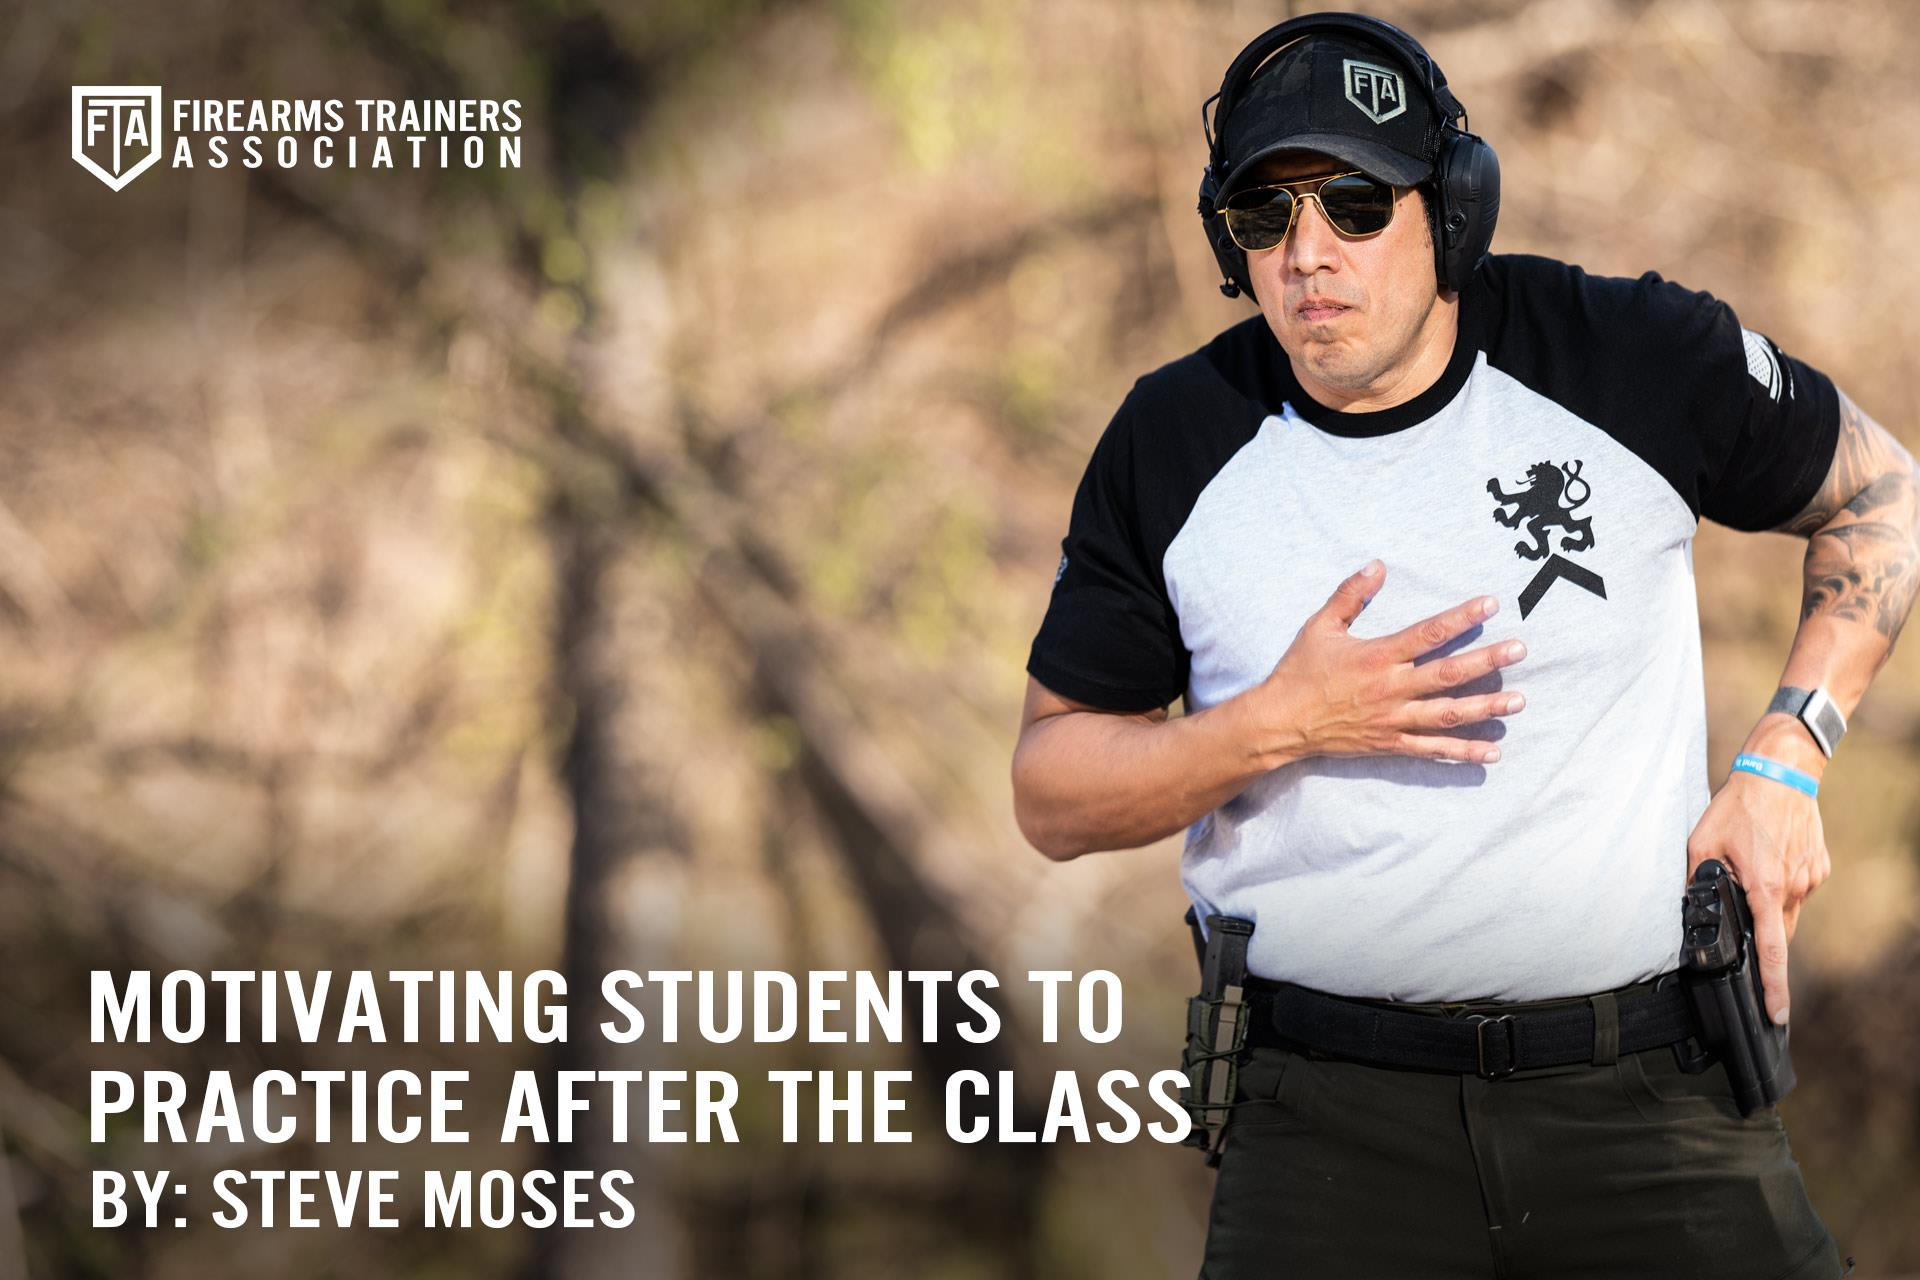 MOTIVATING STUDENTS TO PRACTICE AFTER THE CLASS